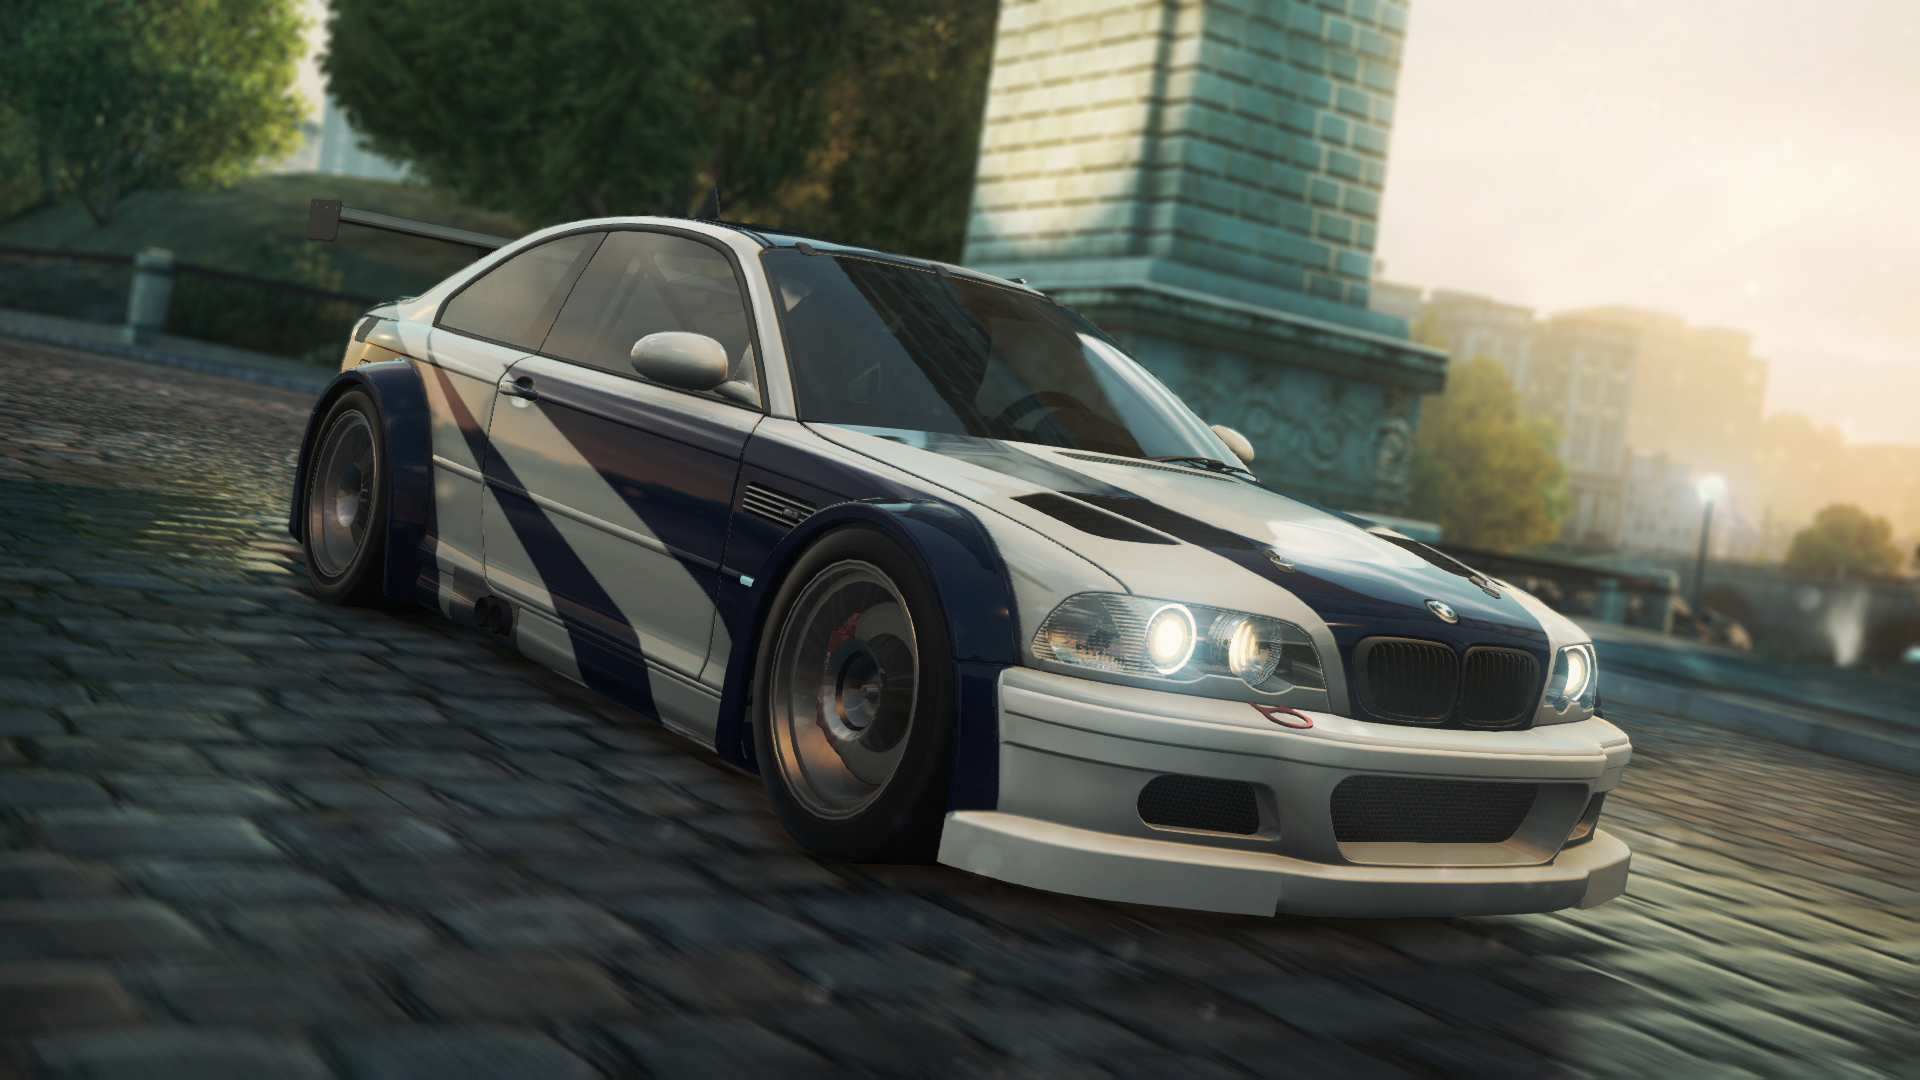 Most Wanted 2005 The Players BMW M3 GTR E46